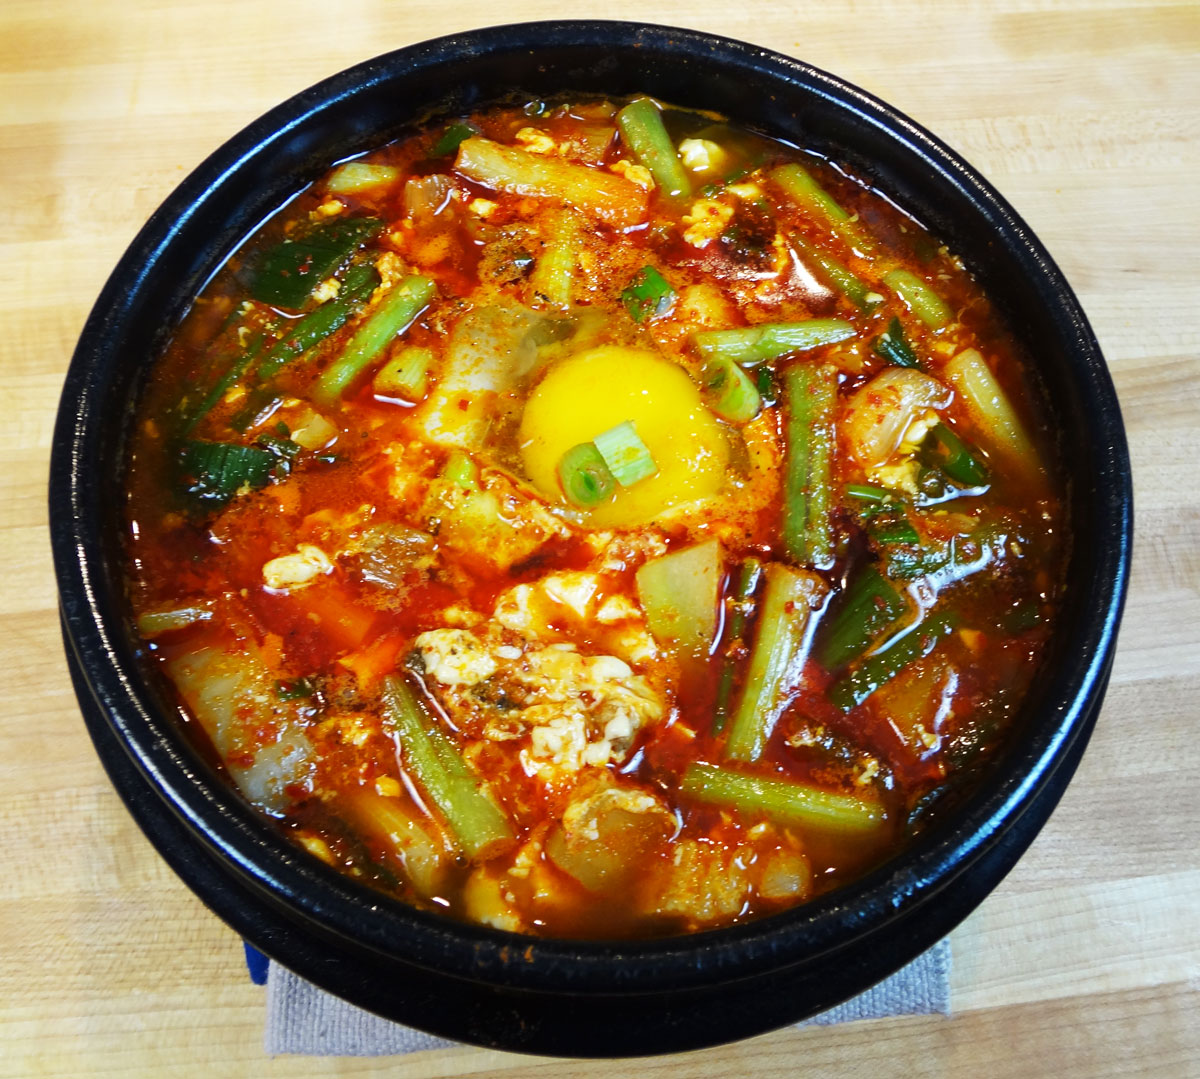 Haemul-sundubu-jjigae (Spicy soft tofu stew with seafood) recipe ...